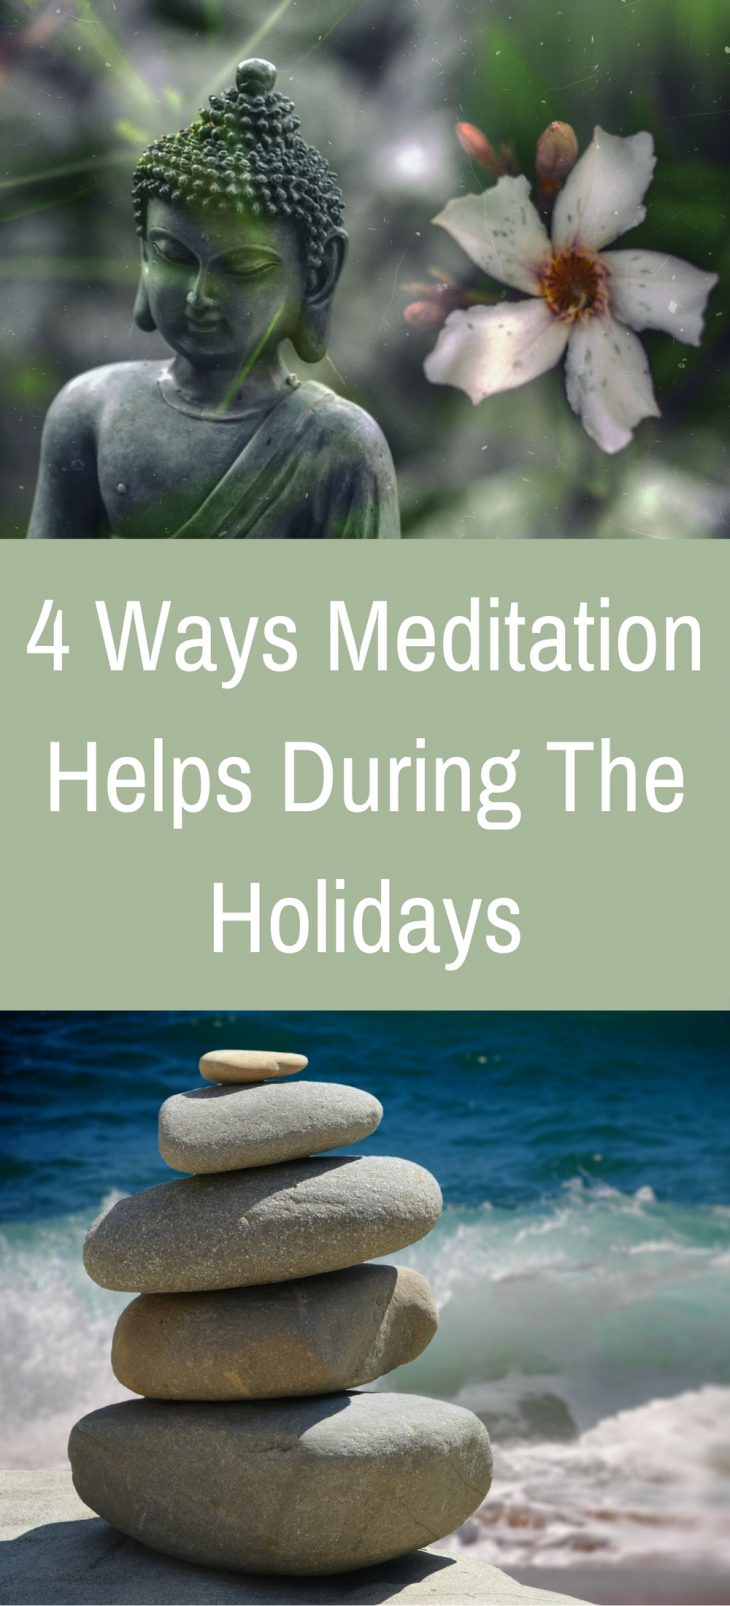 4 Ways Meditation Helps During The Holidays